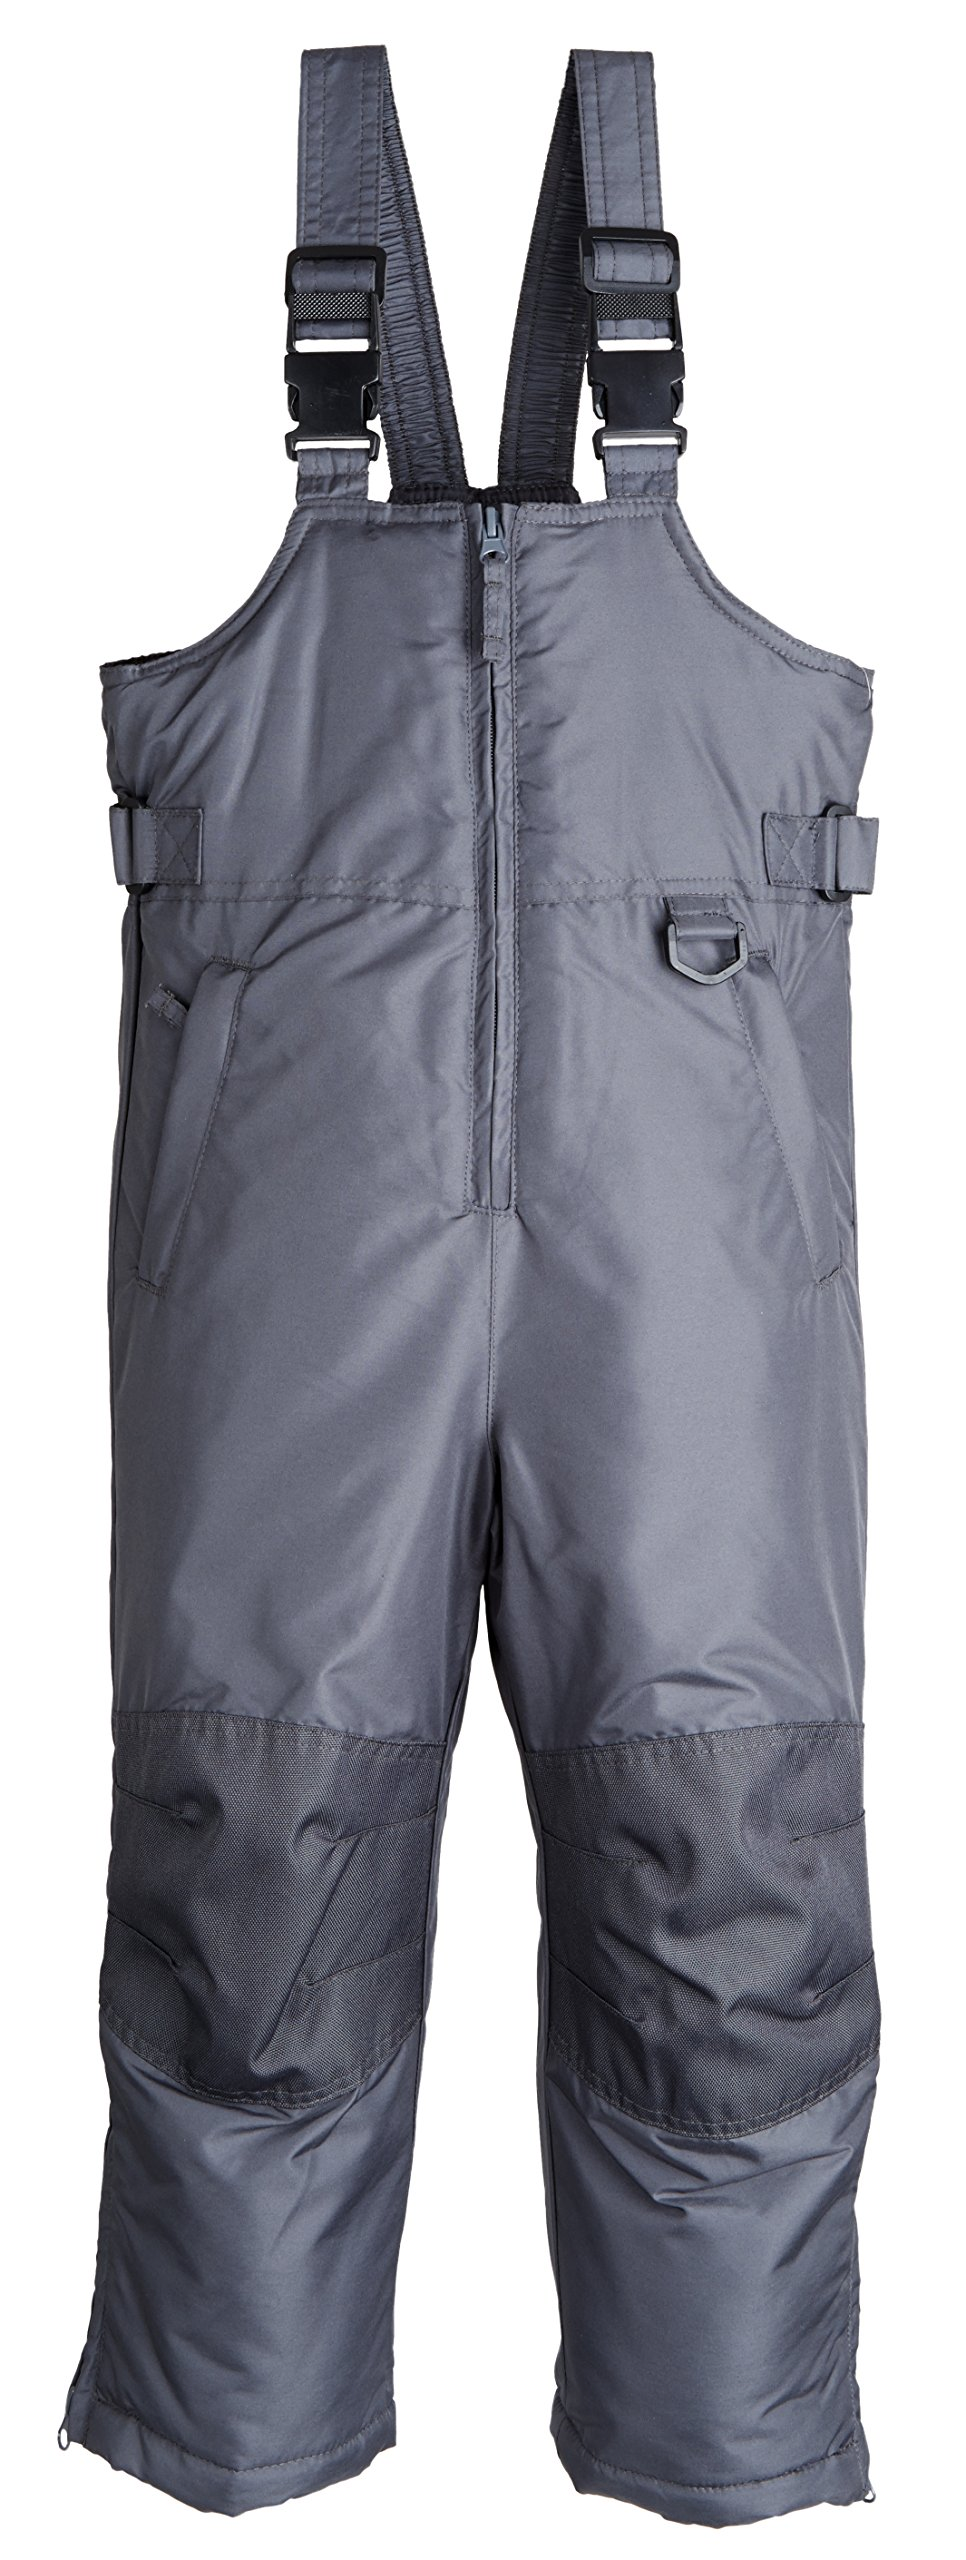 iXtreme Kids Water Resistant Insulated Snowboard Snowpants Pant Snowbib Snow Bib - Grey (Size 16/18) by iXtreme